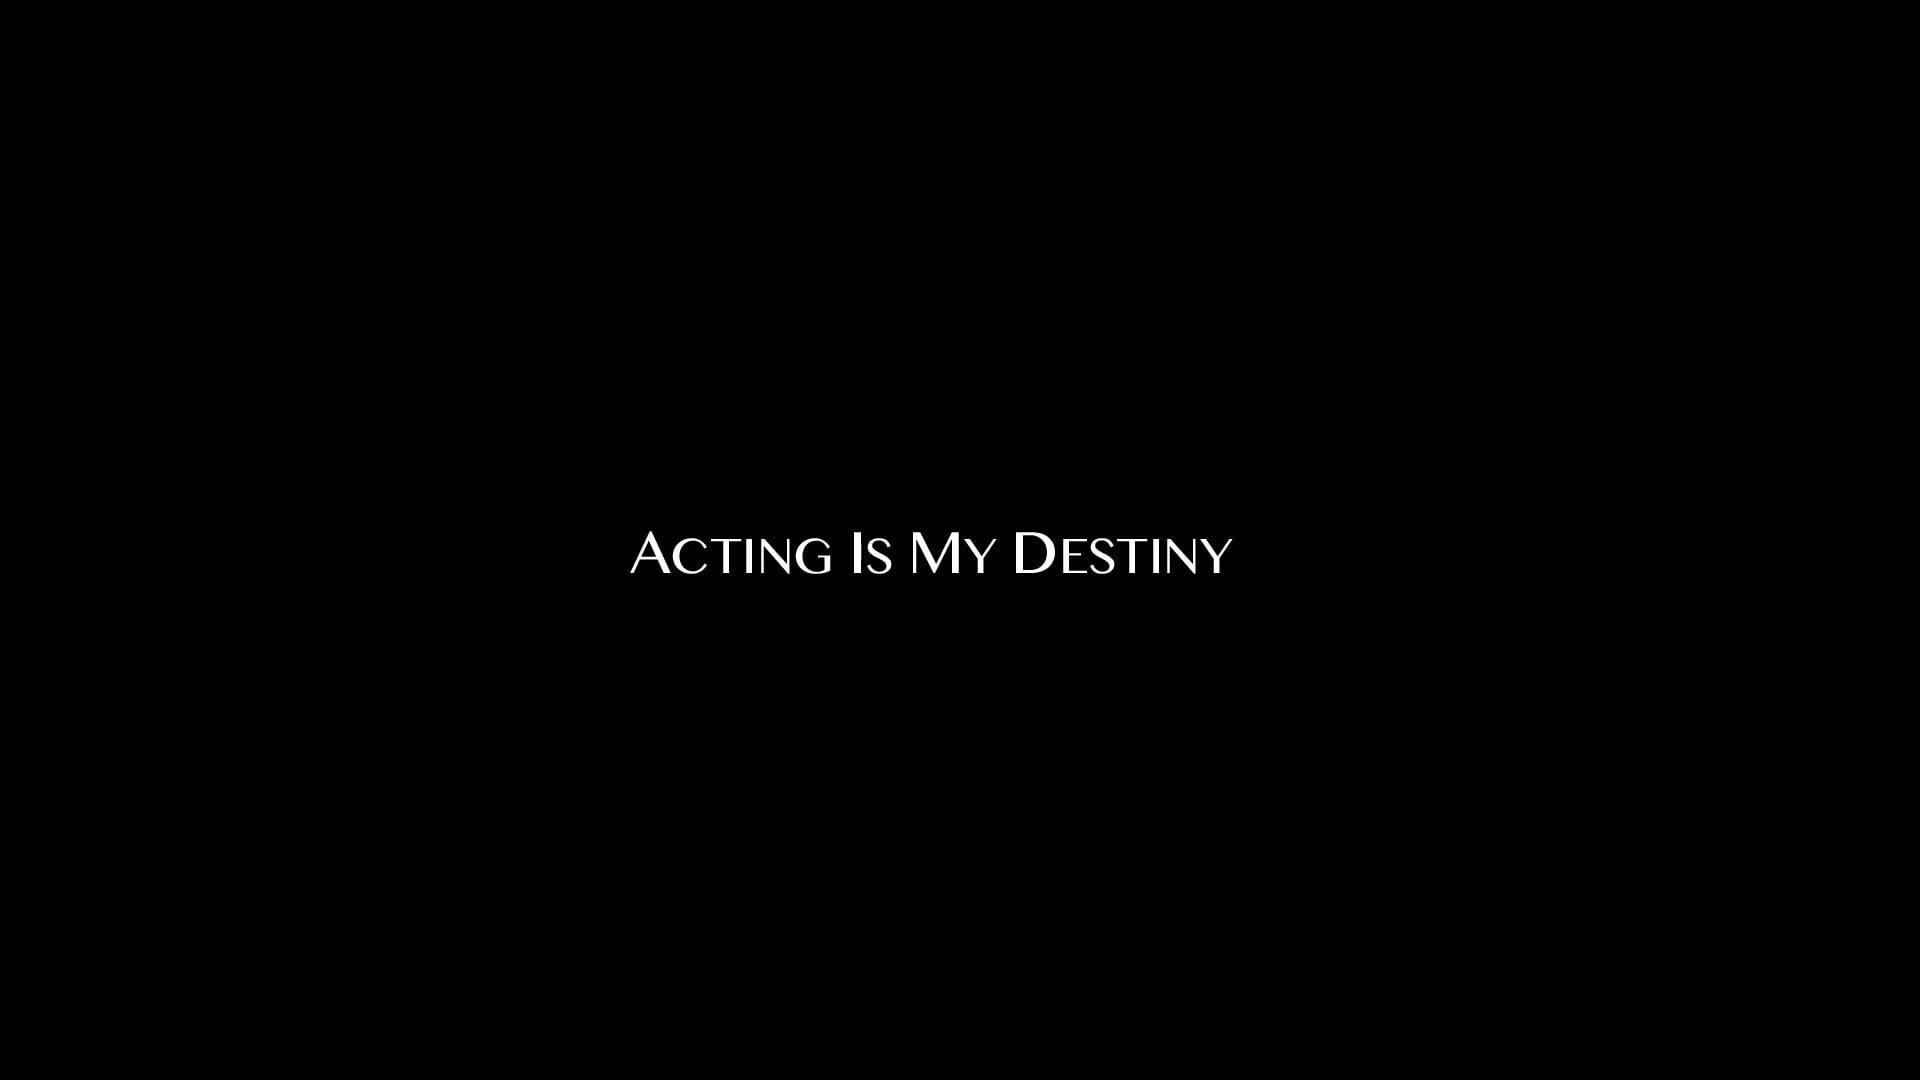 The Short Film 'Acting Is My Destiny' TRAILER